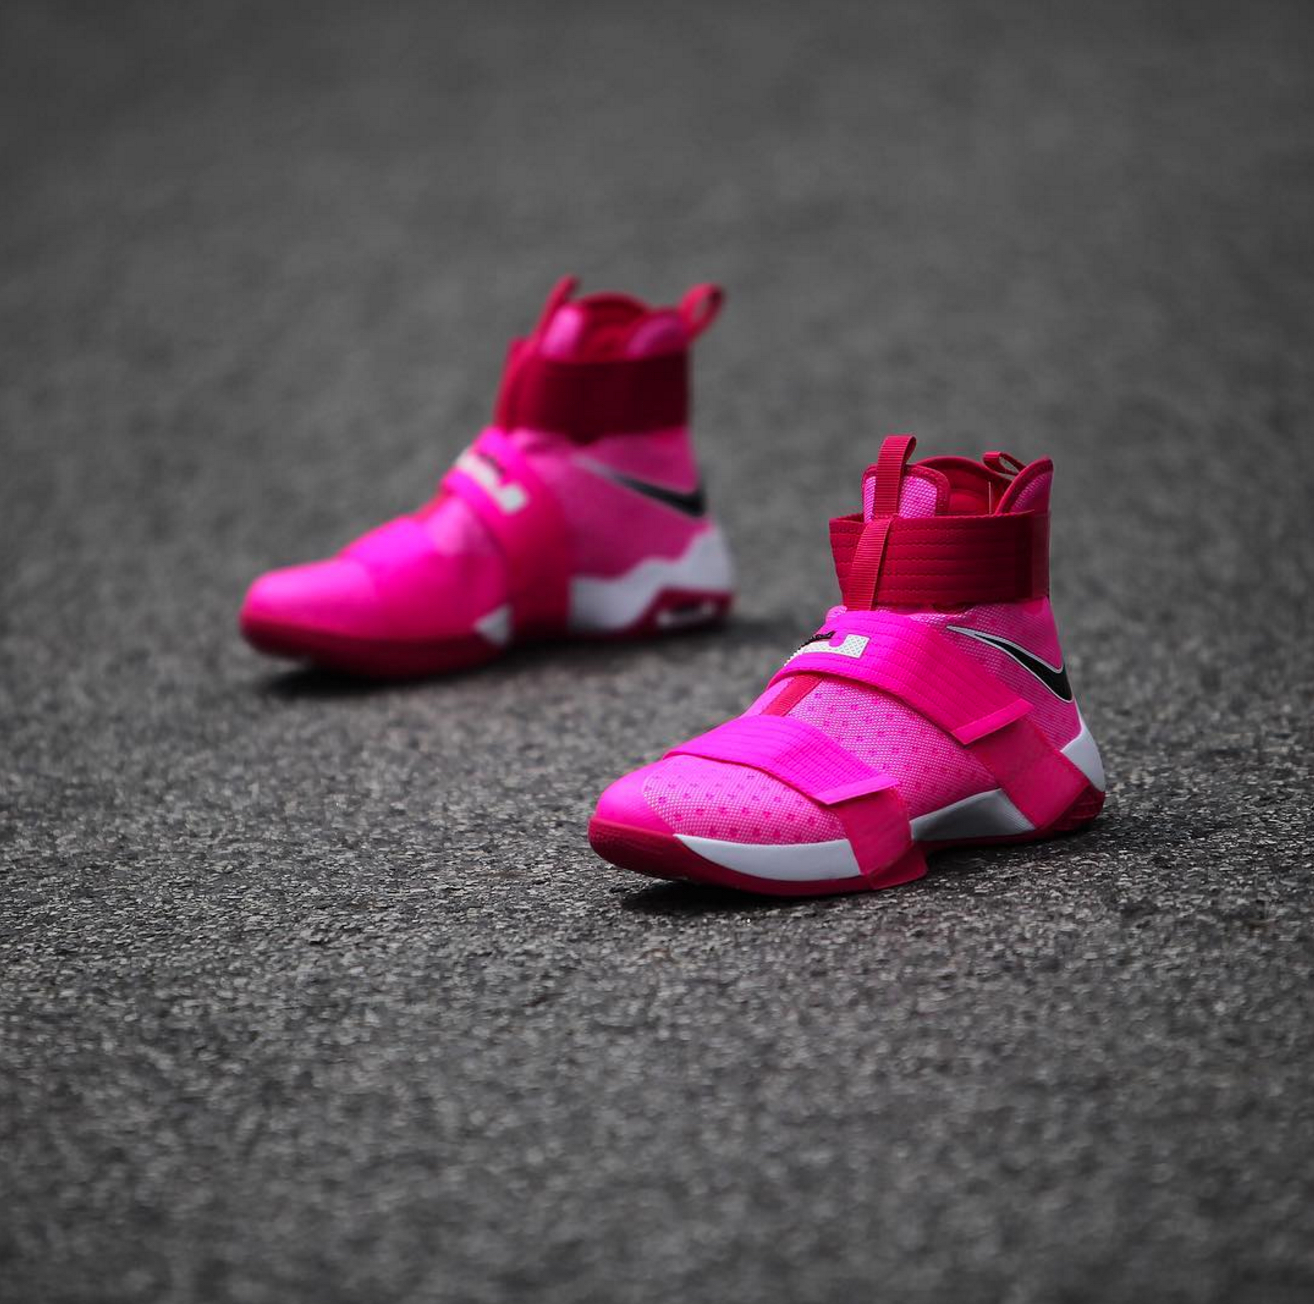 c4afa5d9a54 nike lebron soldier 10 breast cancer 9 · Kicks On Court   Nike ...